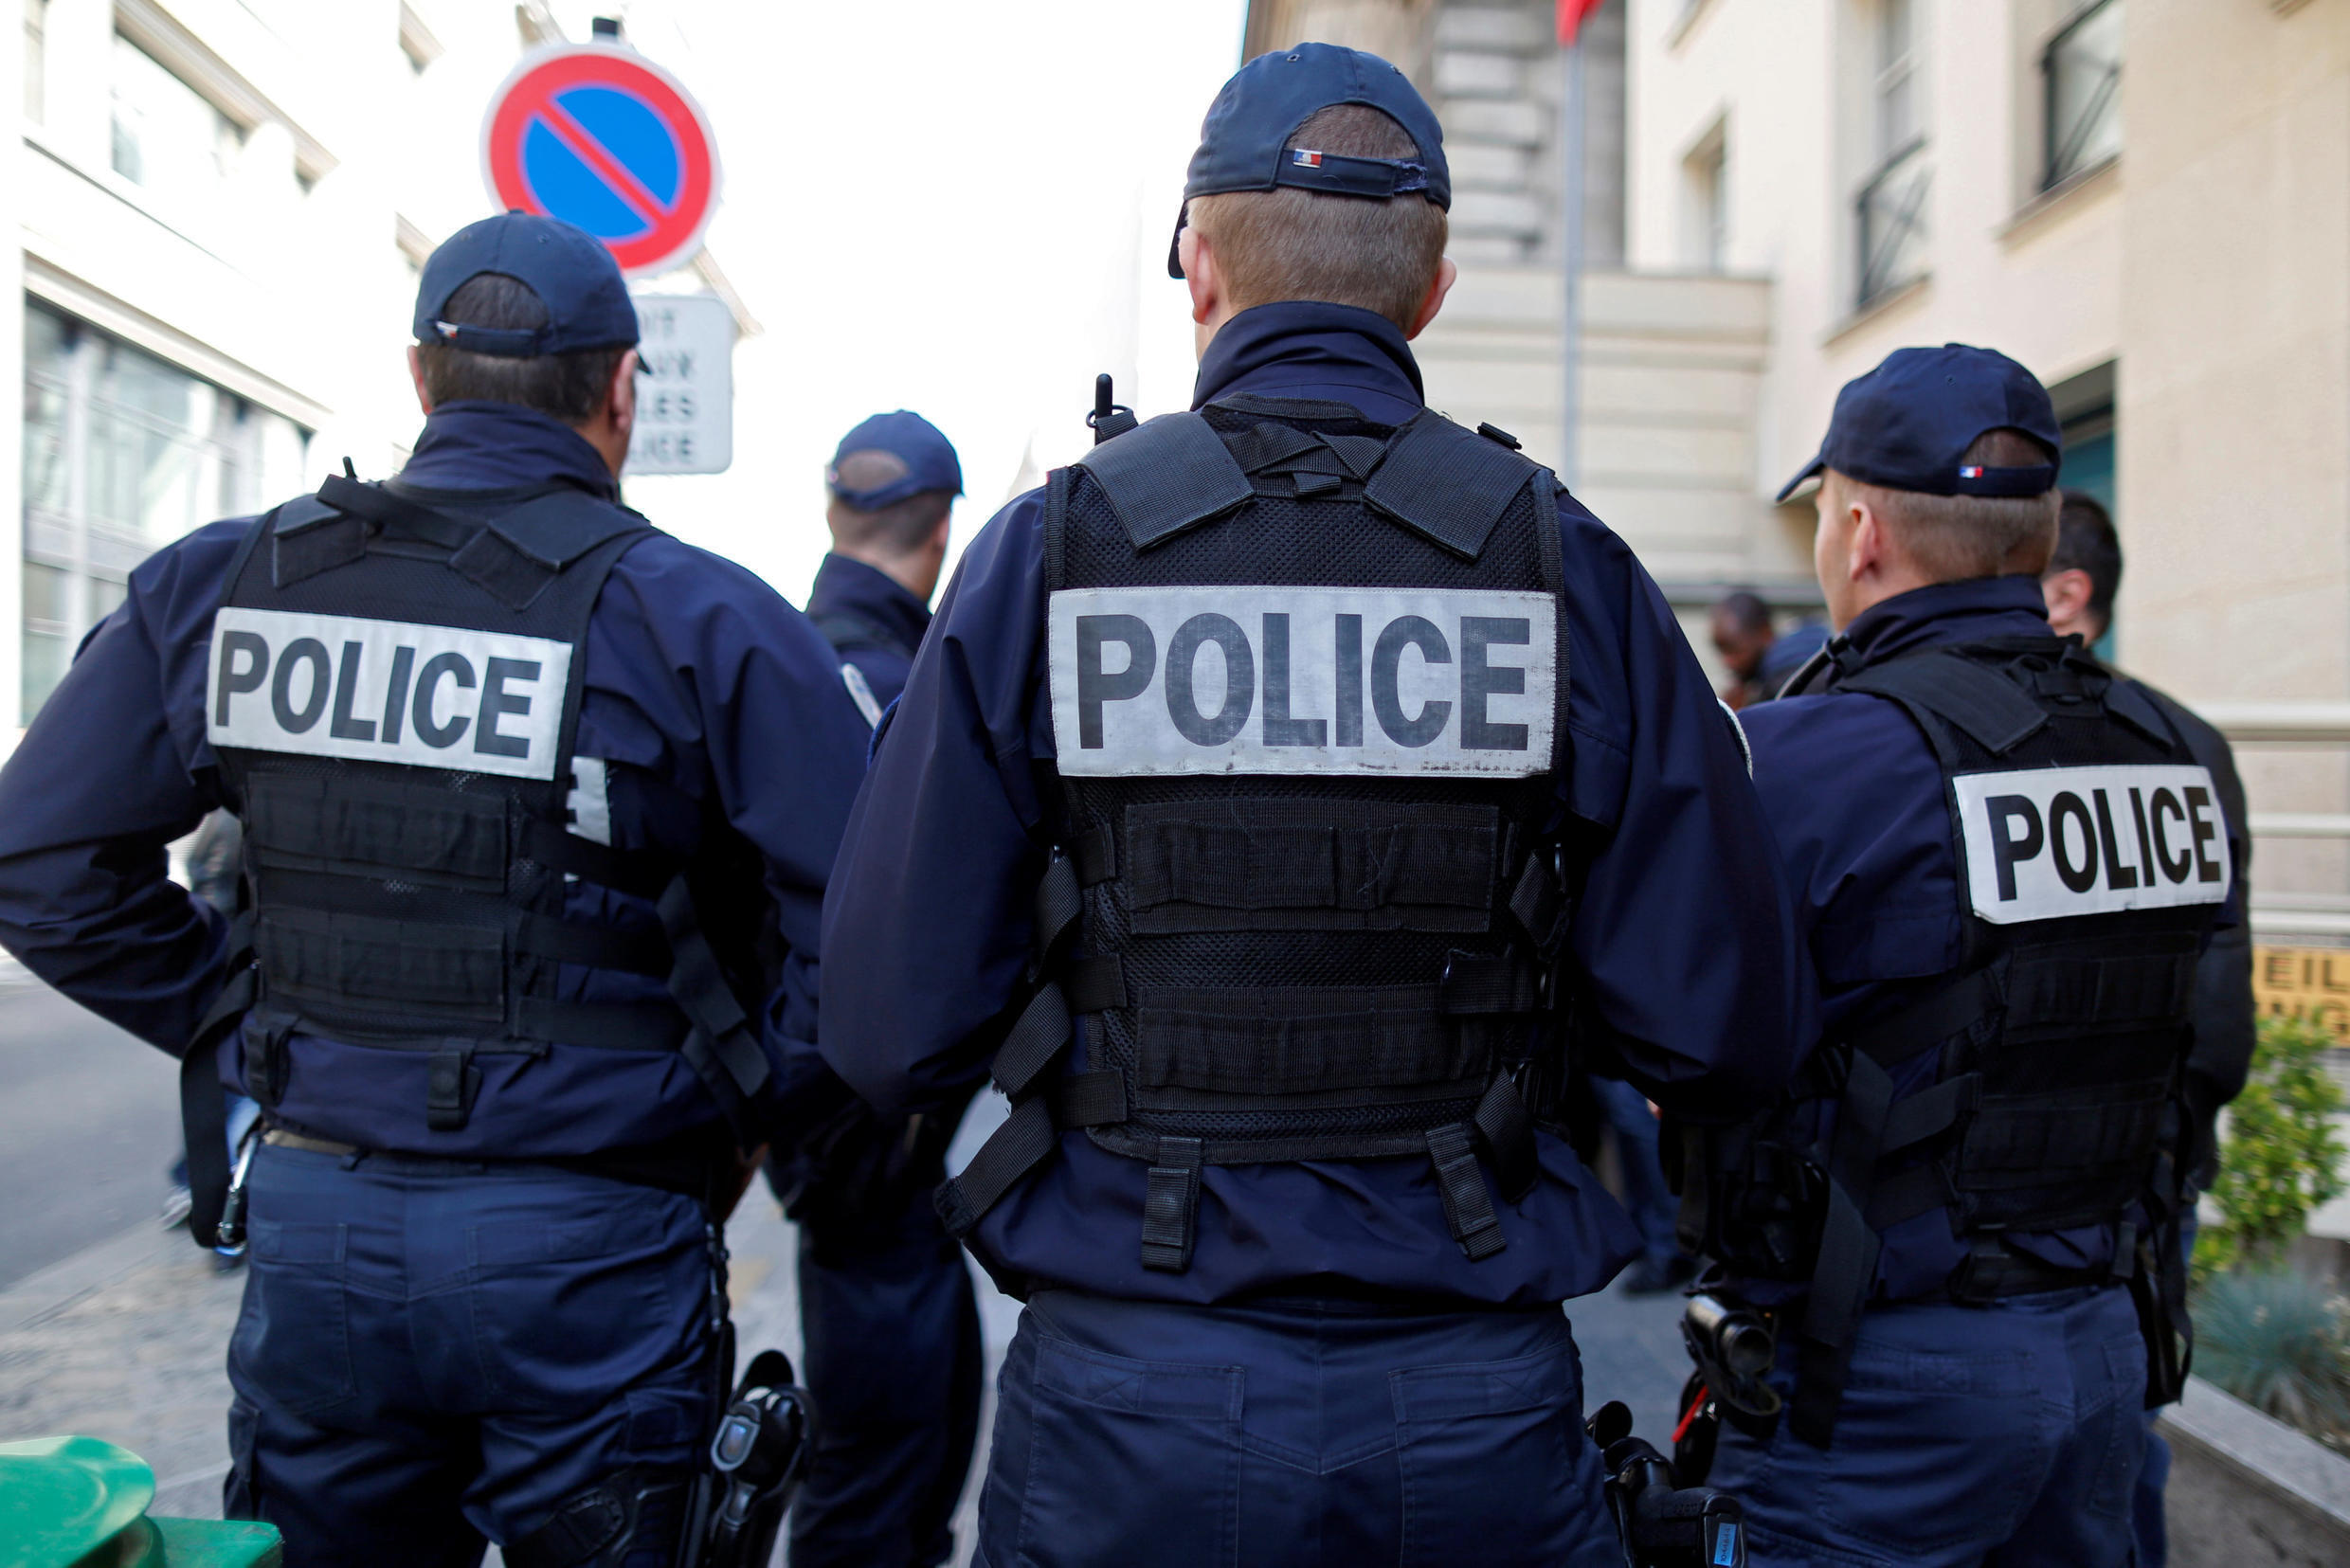 French police gather outside a local police station in Paris after the Molotov cocktail attack